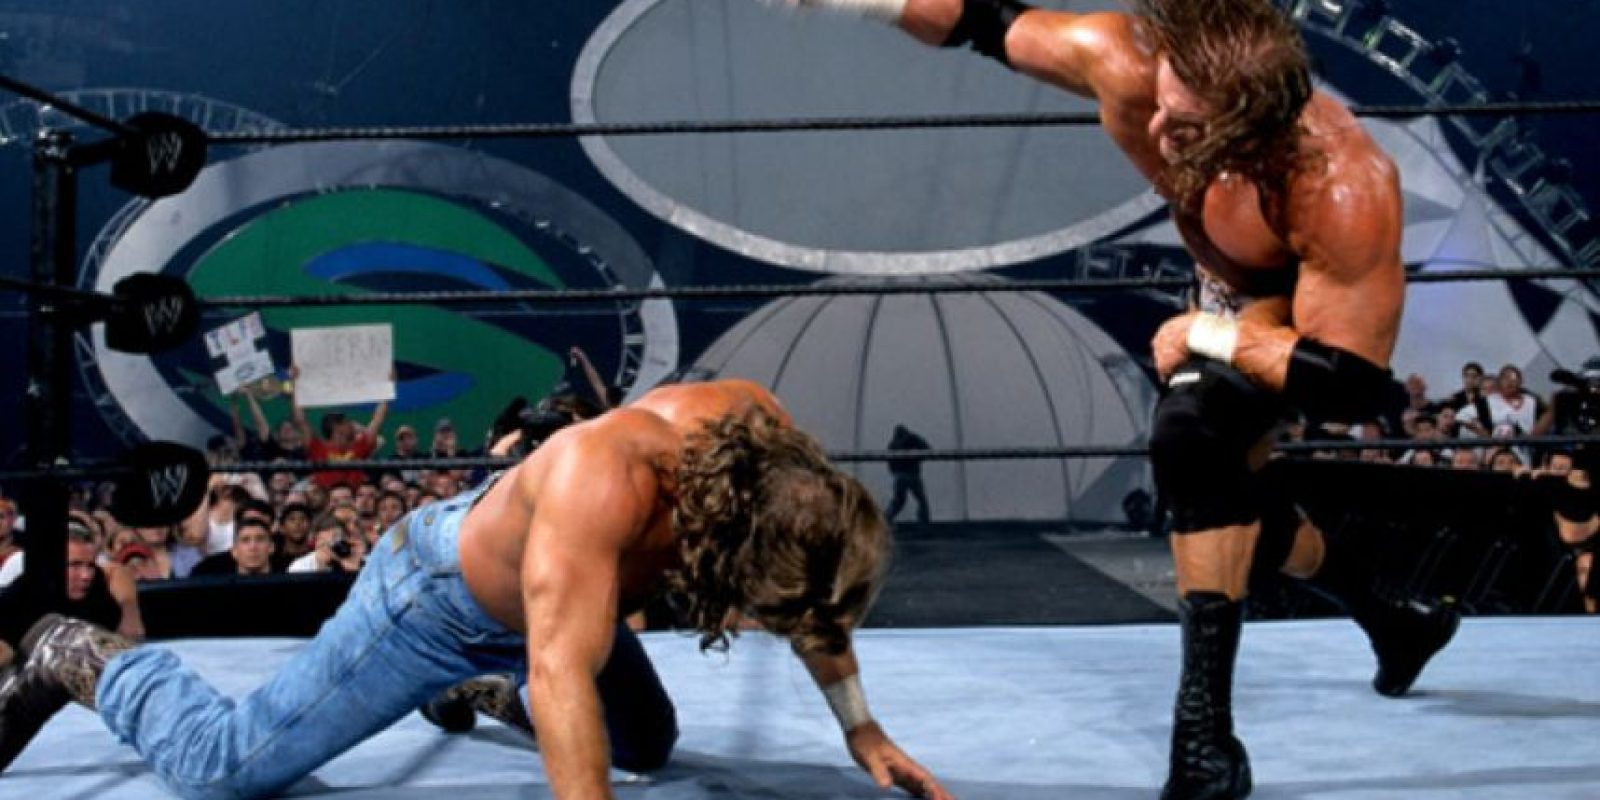 Shawn Michaels vs Triple H, en Summerslam 2002 Foto: WWE